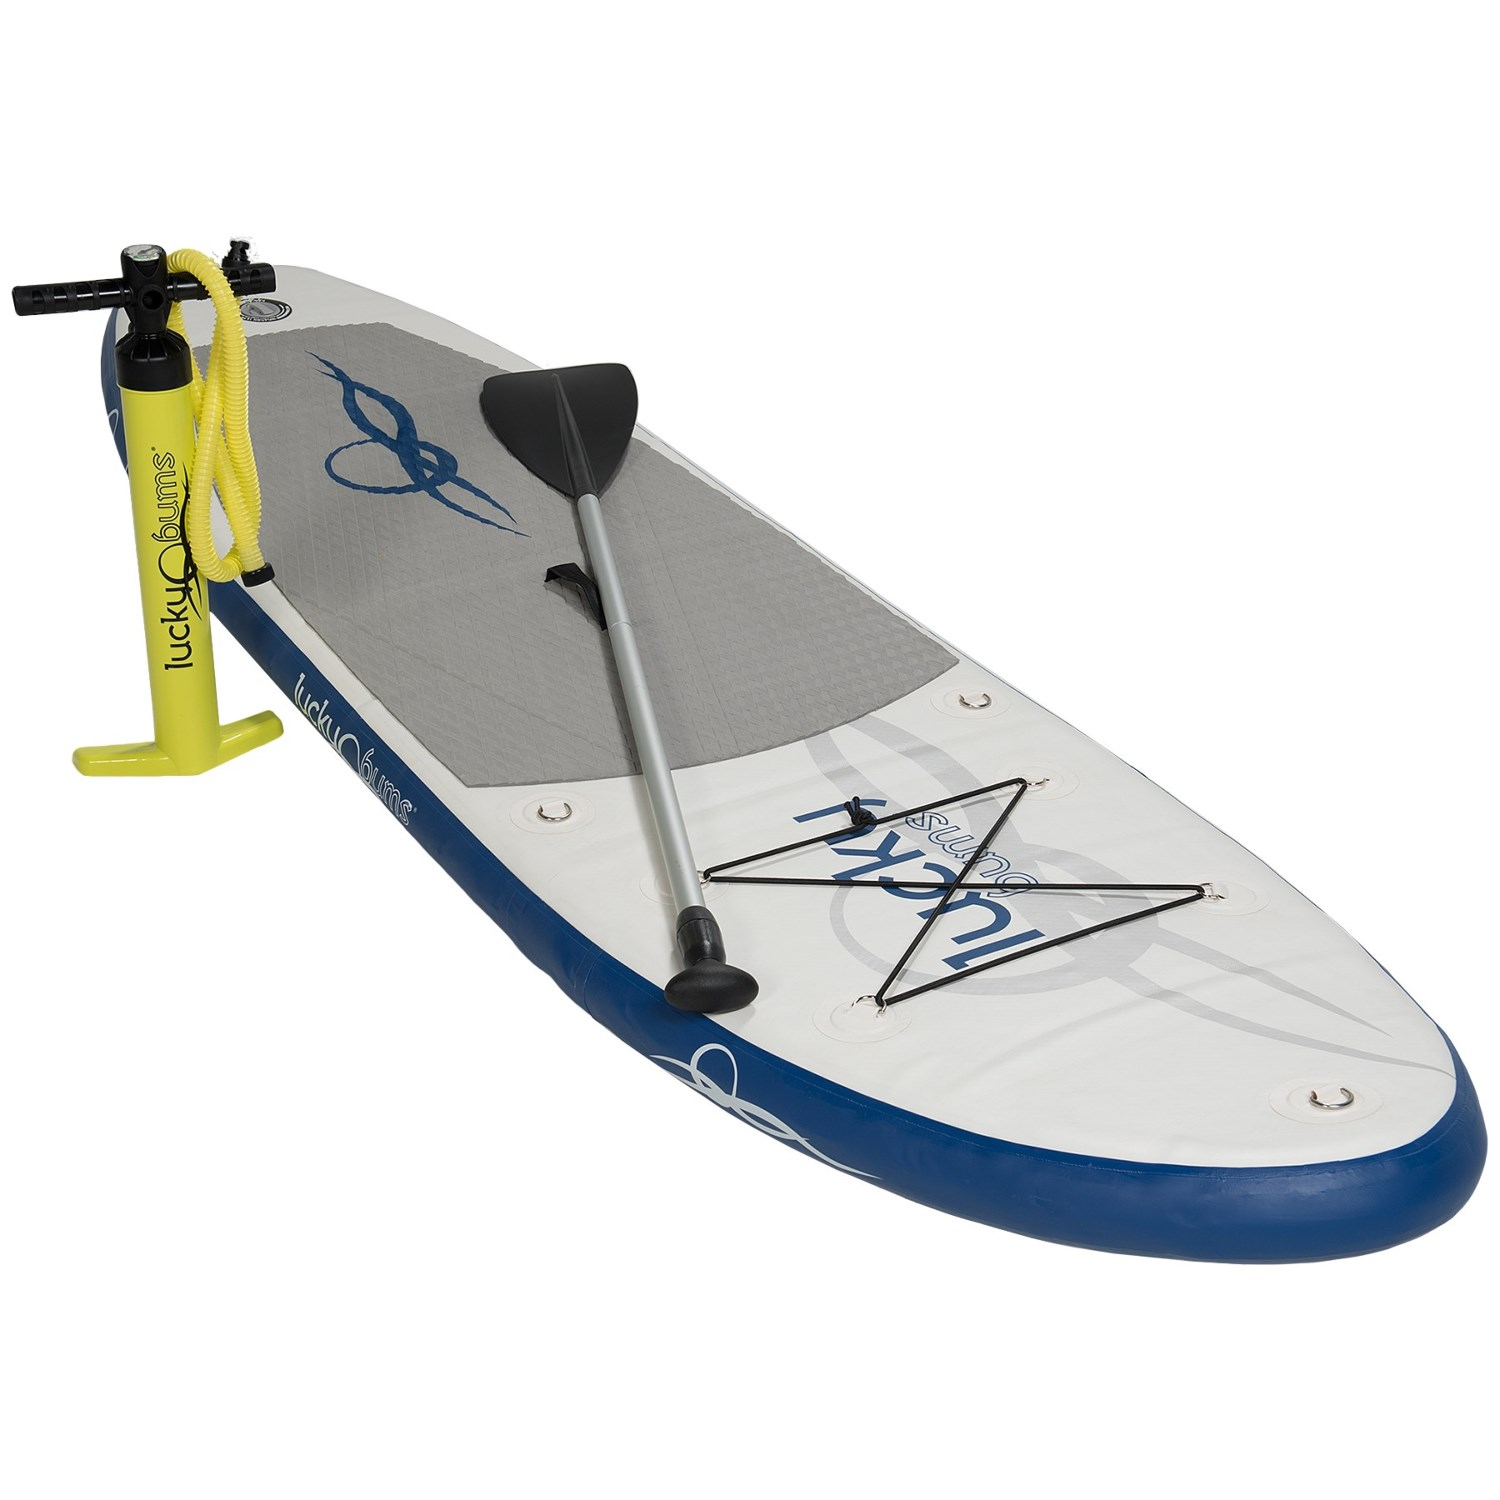 Lucky Bums7 Inflatable Stand-Up Paddle Board Kit - 7'